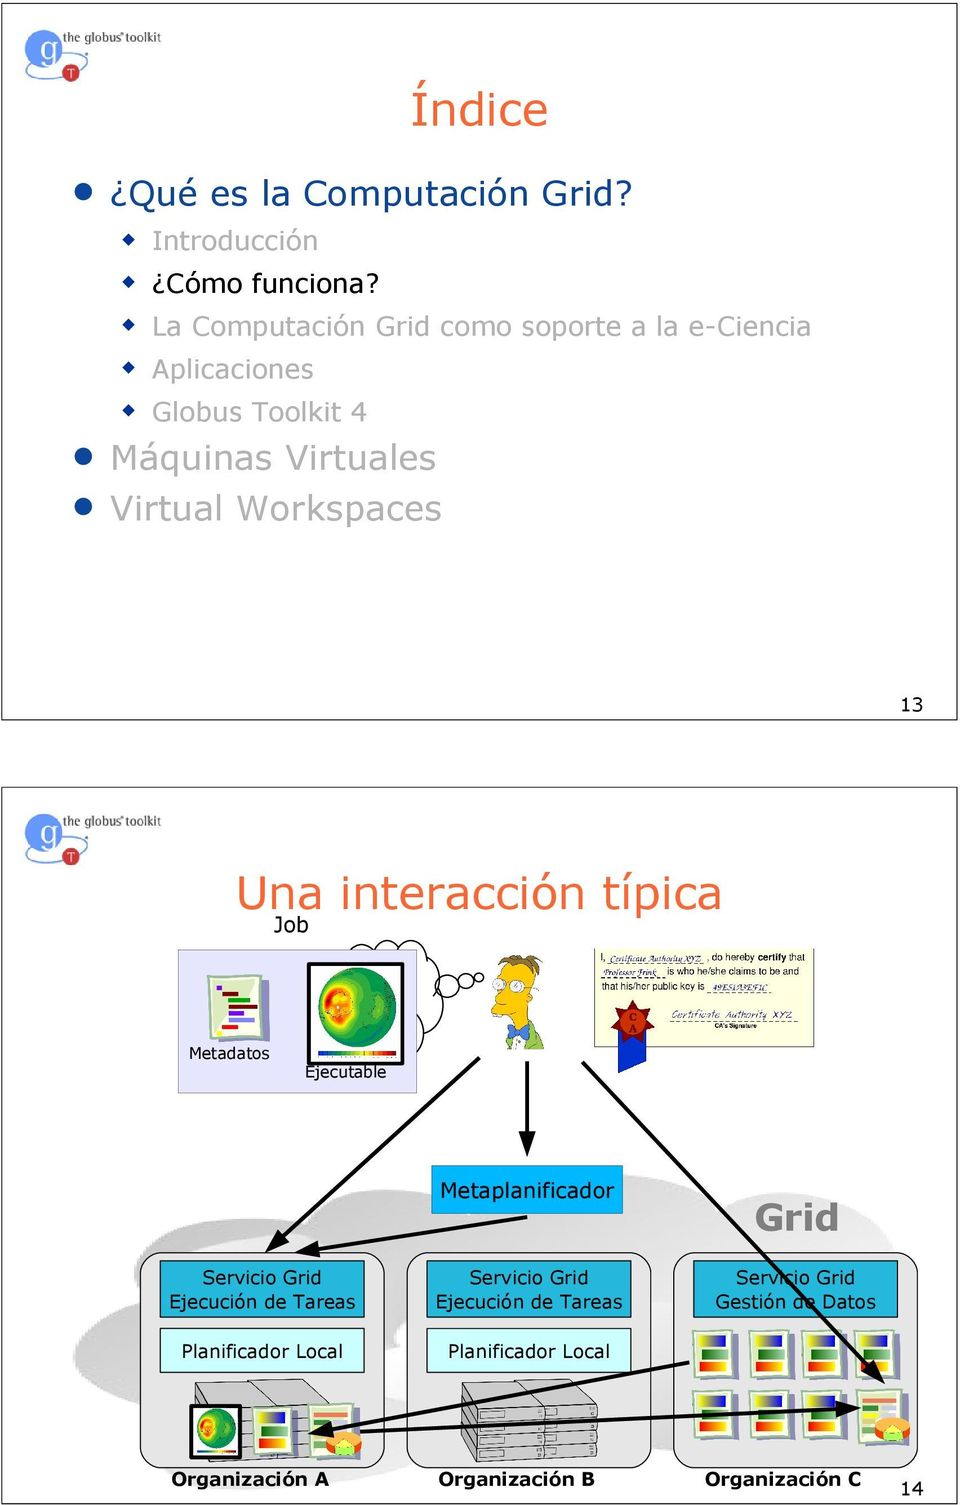 Workspaces 13 Una interacción típica Job Metadatos Ejecutable Metaplanificador Servicio Grid Ejecución de